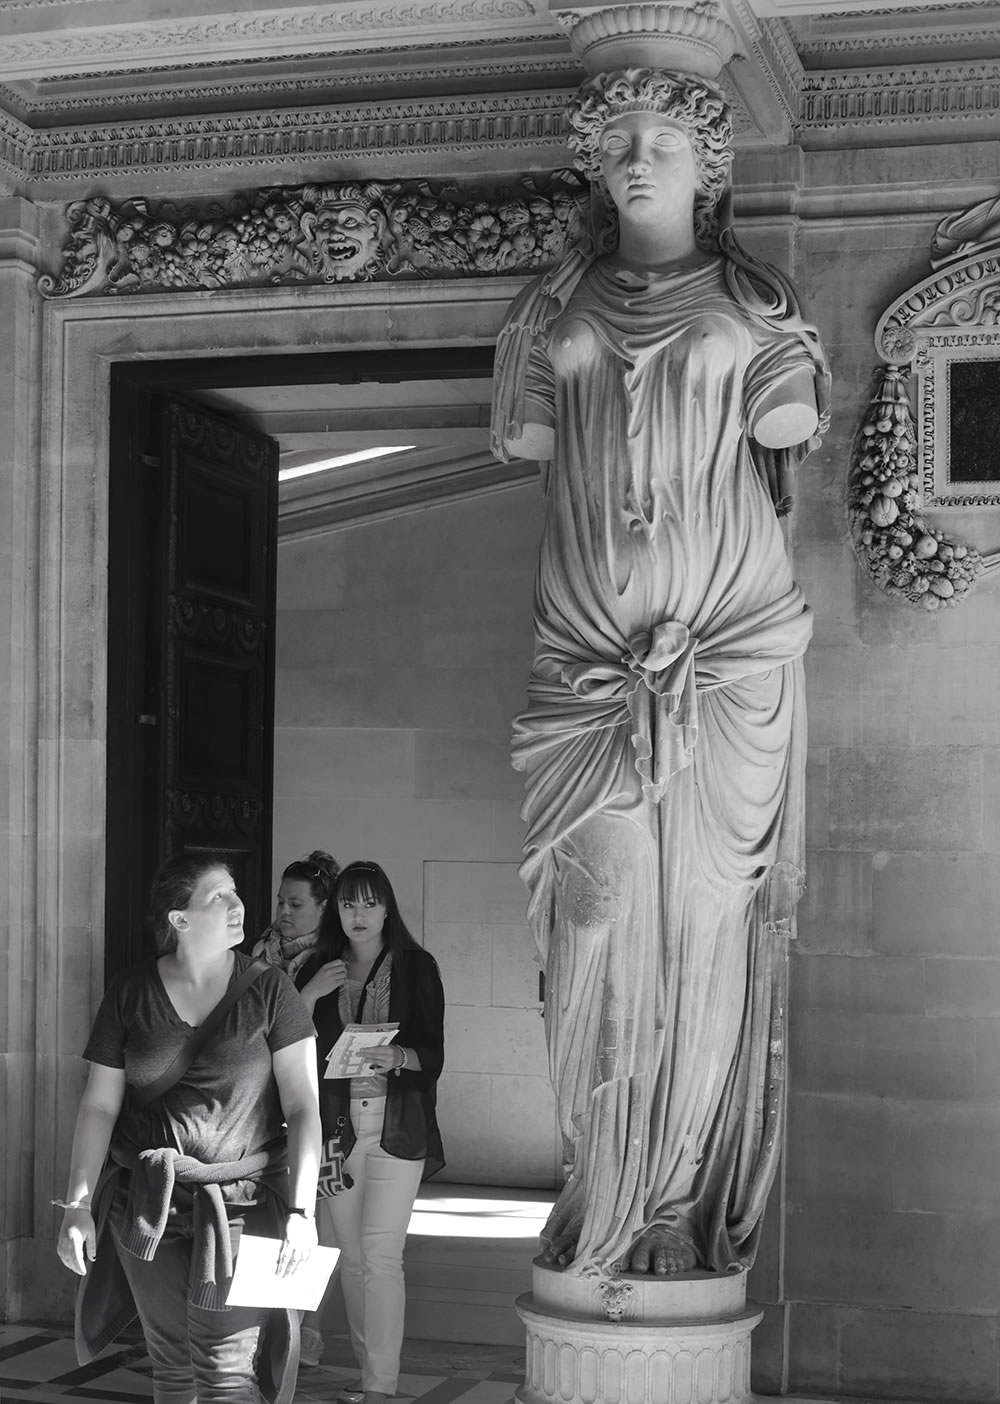 Visitors entering the Caryatid room at the Louvre, whose doorway is flanked by four female figures (the caryatids: female figures serving as architectural support) sculpted by Jean Goujon in 1550.